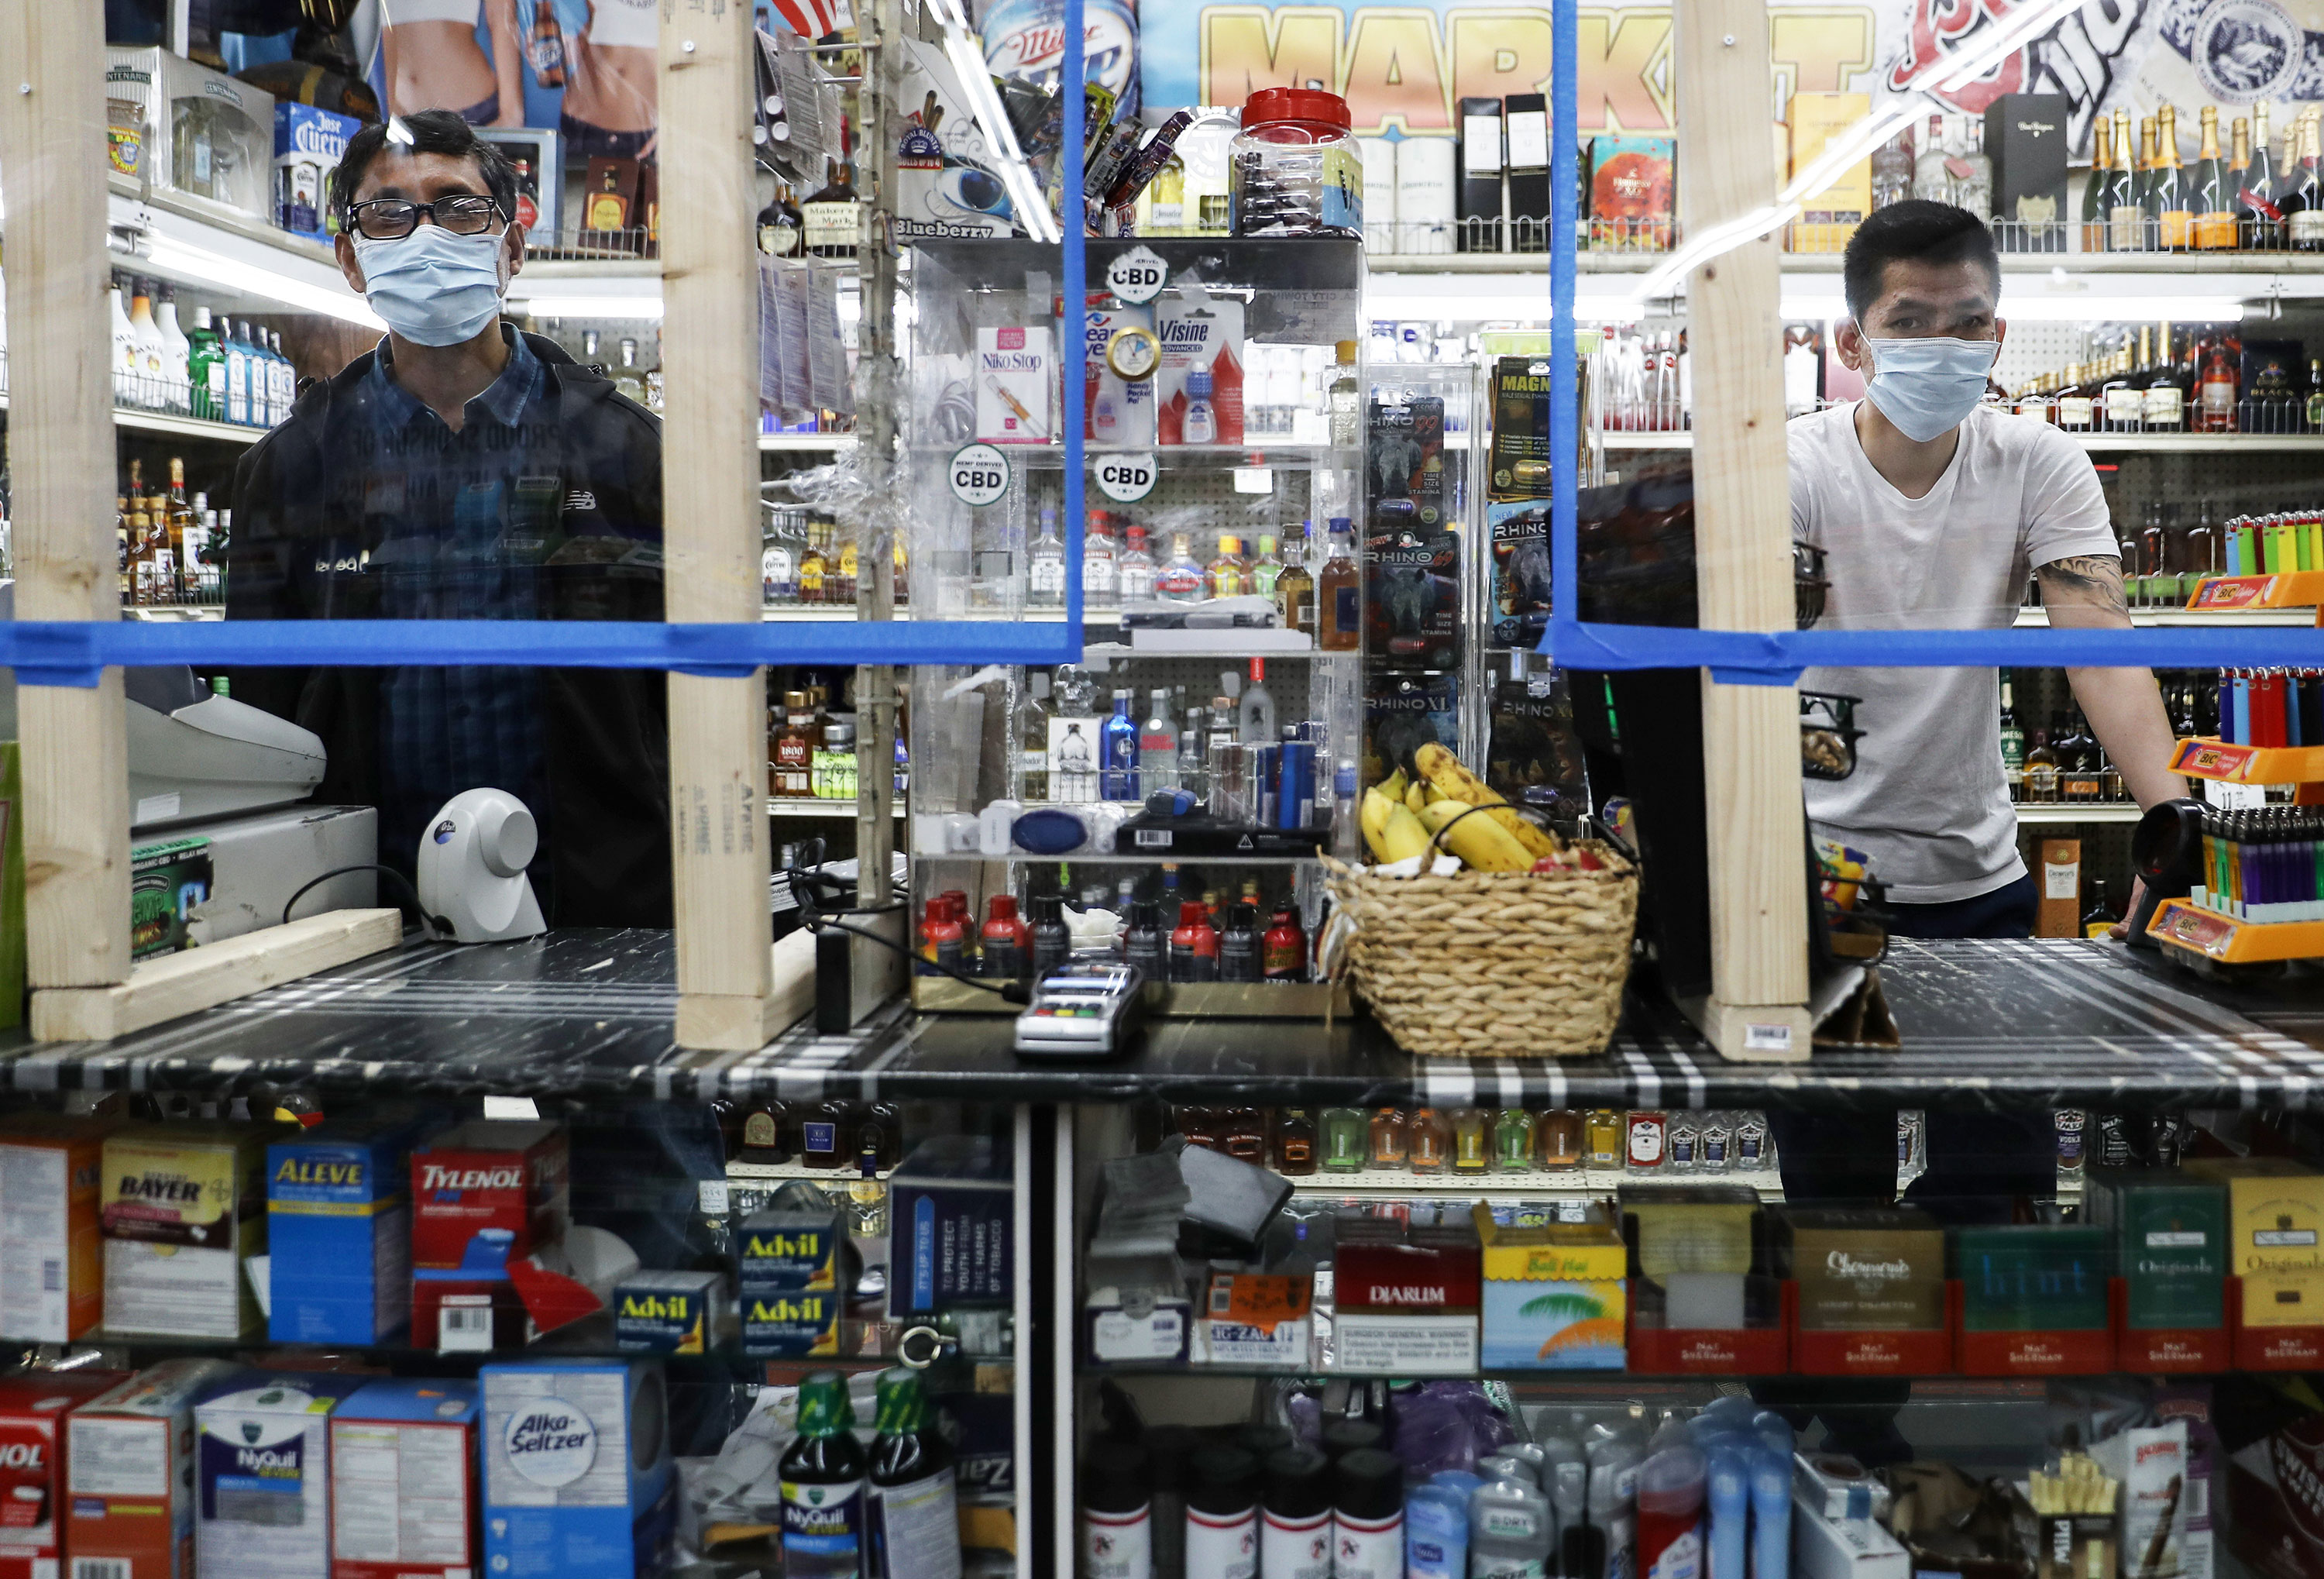 Cashiers wear face masks at a convenience store in Los Angeles, California on April 4.